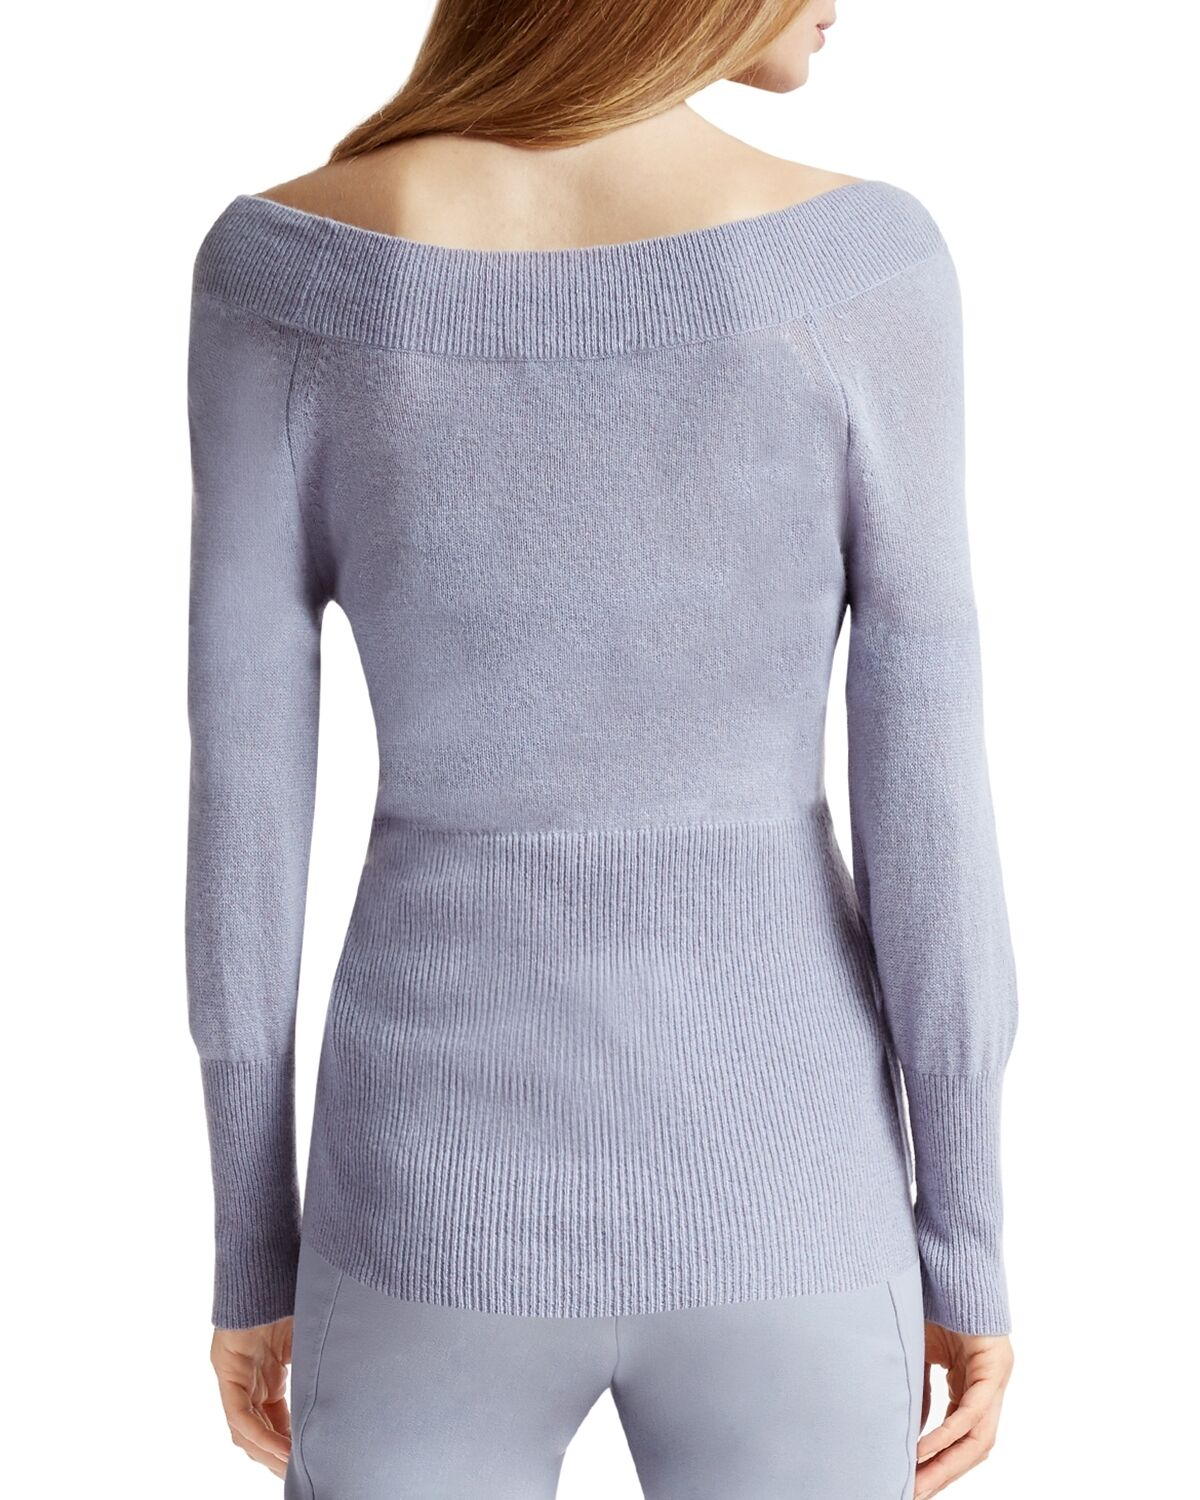 HALSTON HALSTON HALSTON HERITAGE Off-the-Shoulder Cashmere Sweater Small bluee NWT MSRP  395 50e381